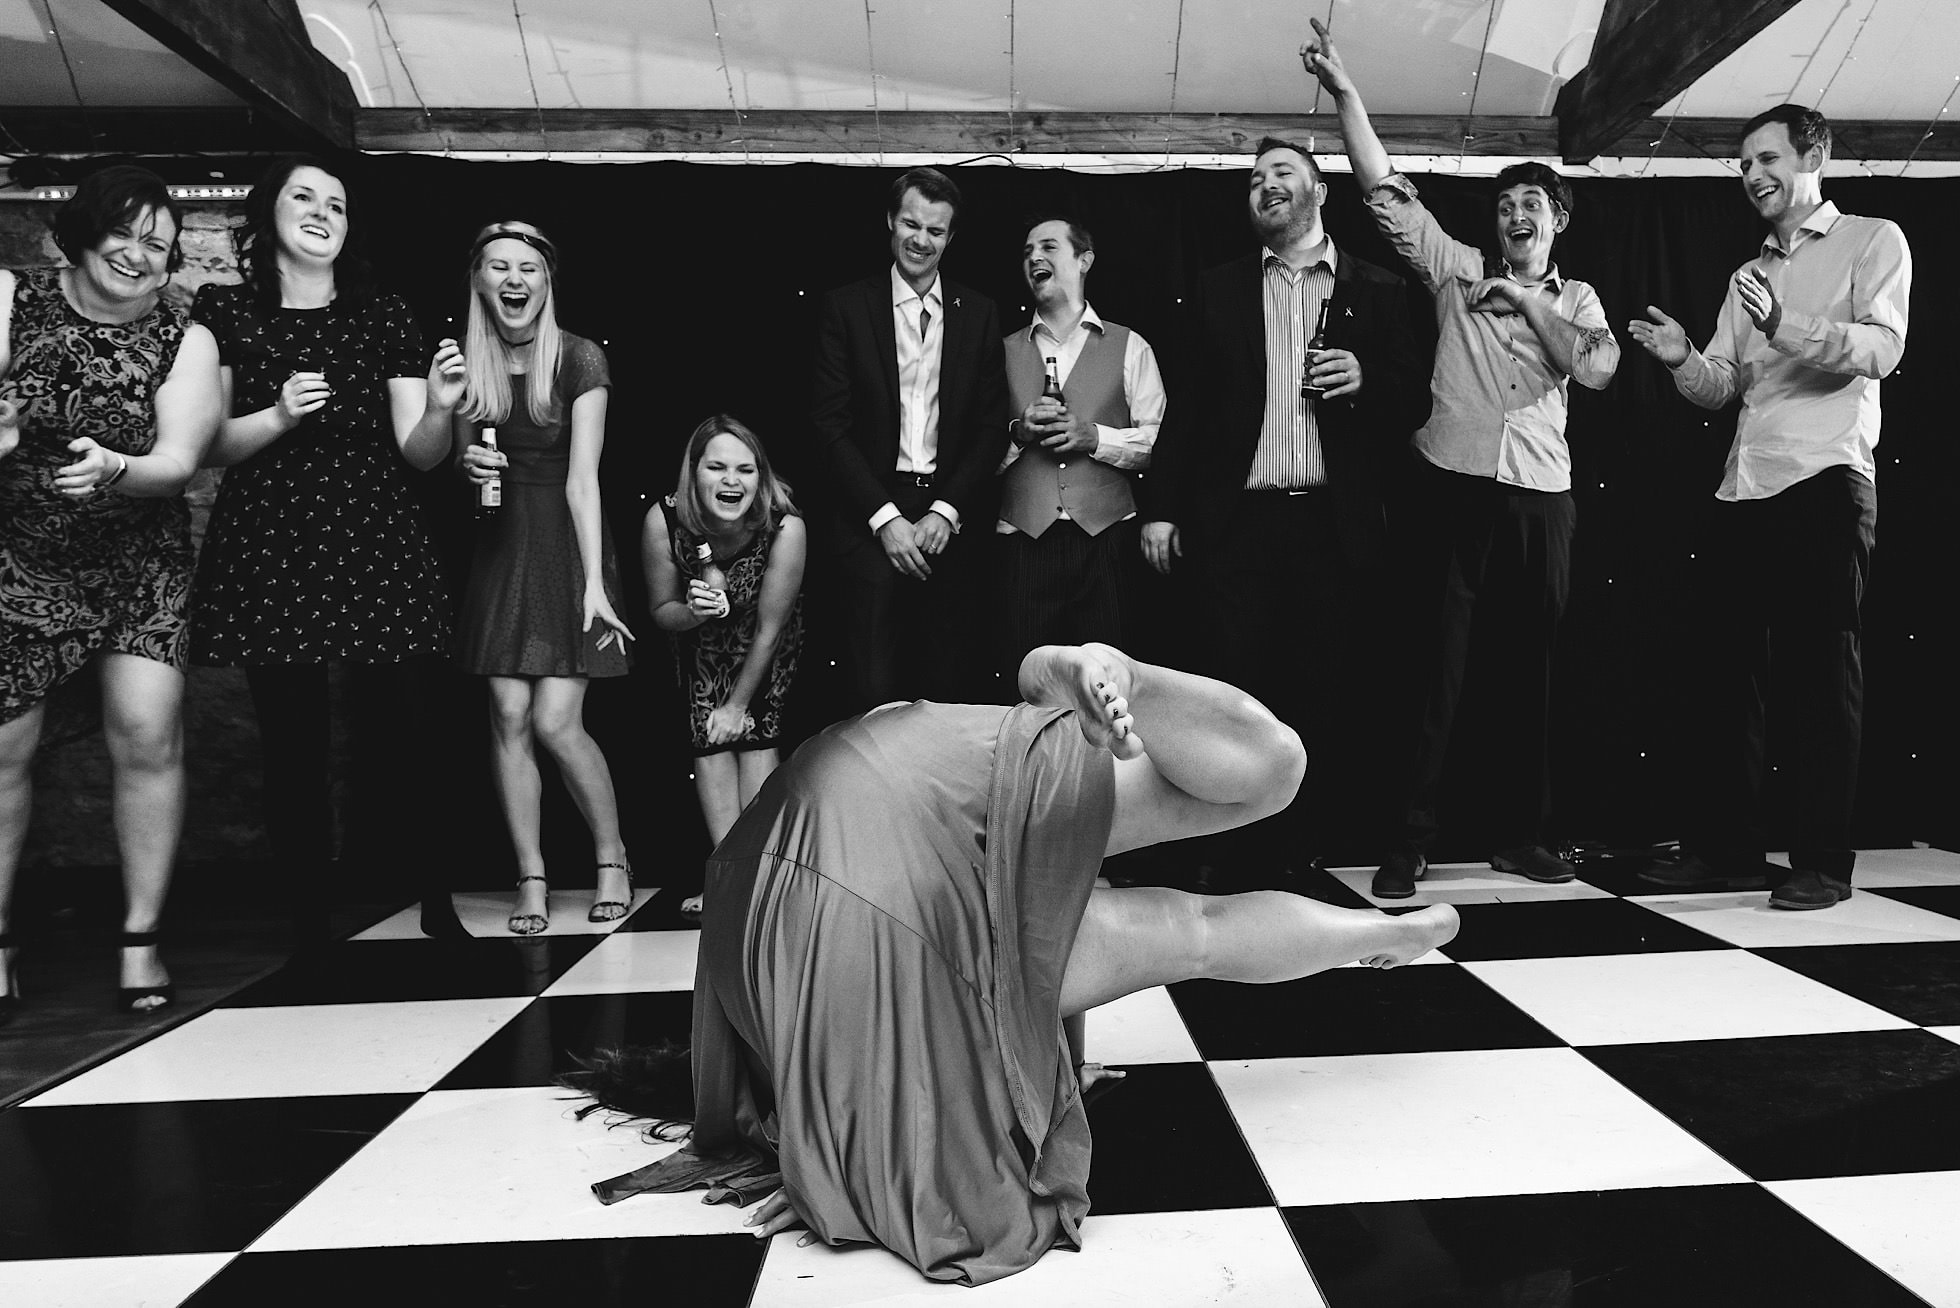 Incredible moves from the bridesmaids!